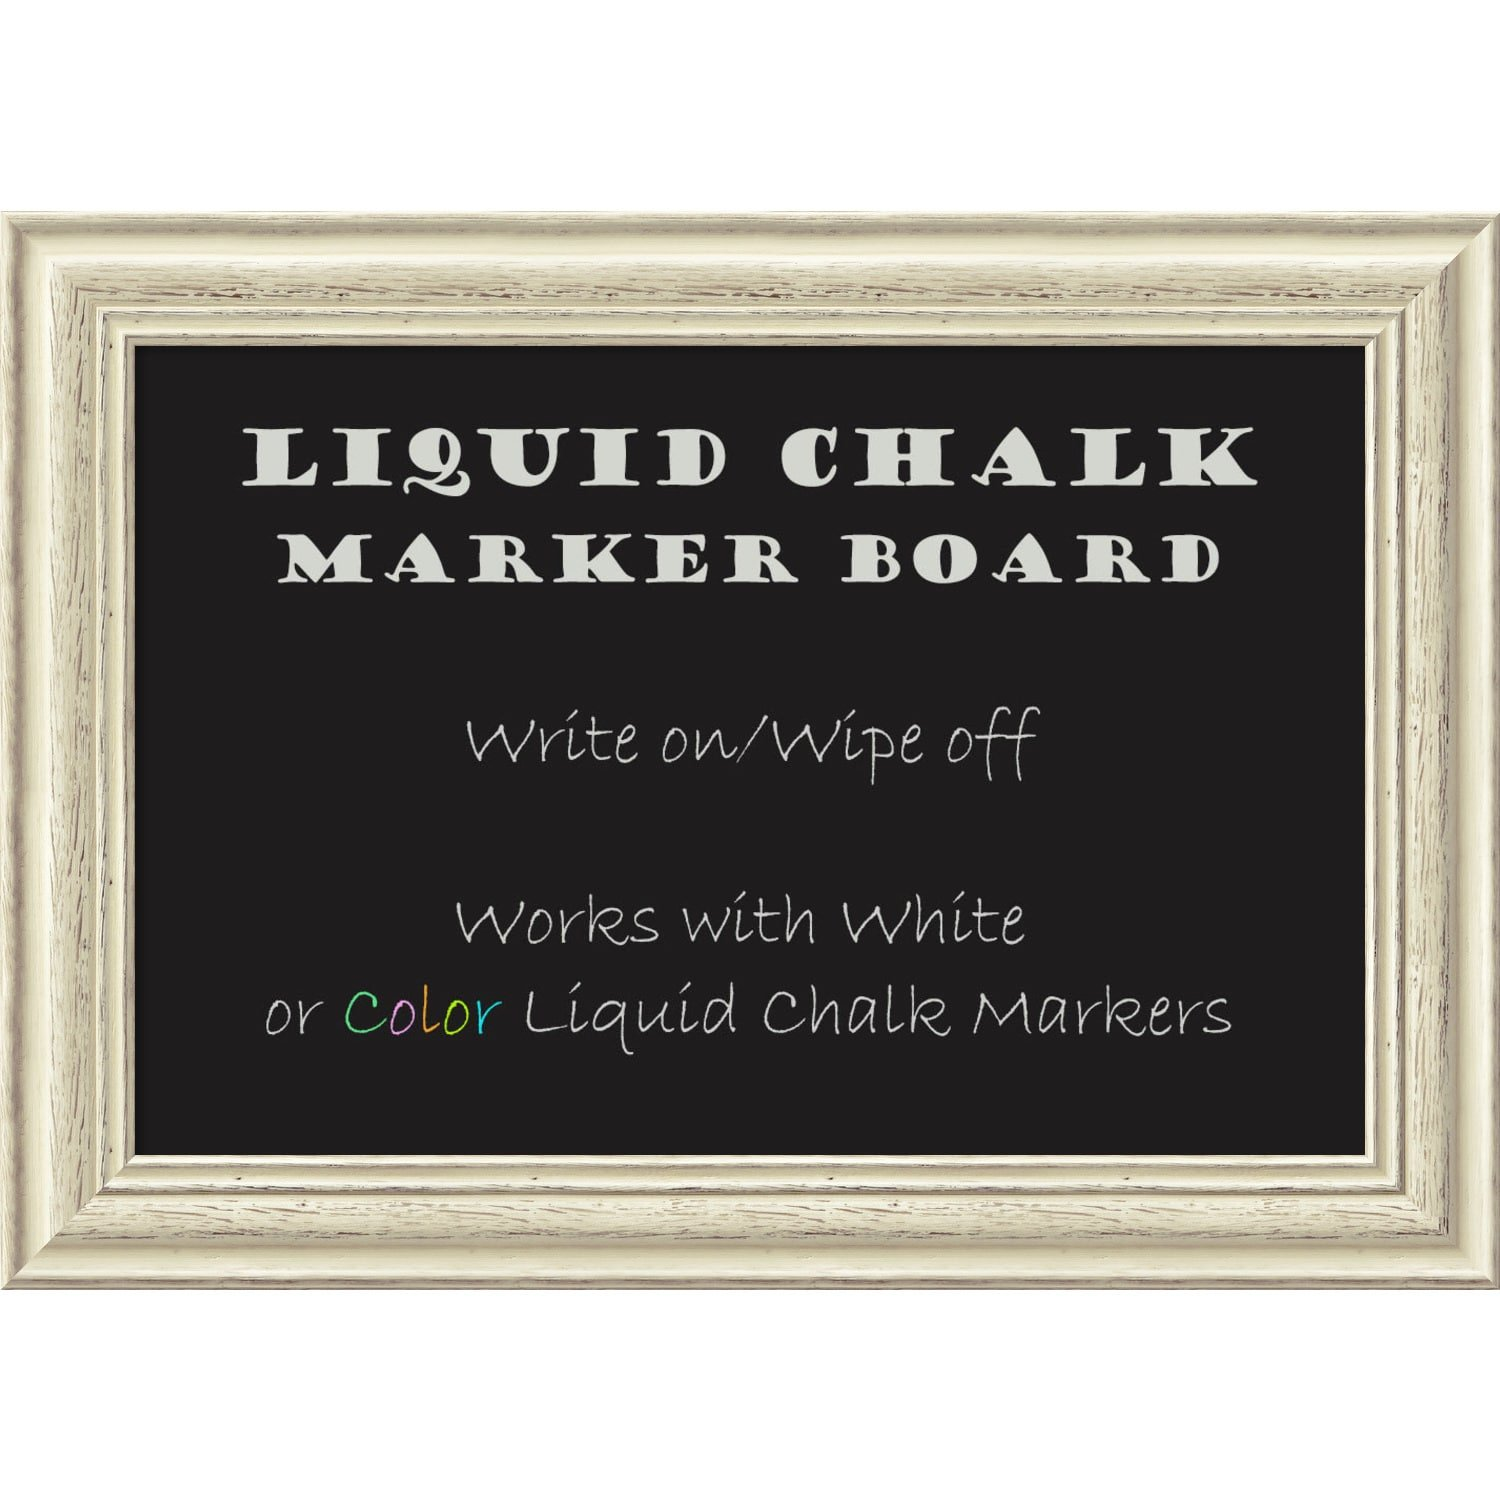 Amanti Art Framed Liquid Chalk Marker Board, Country White Wash Small - 23 x 17 -inch